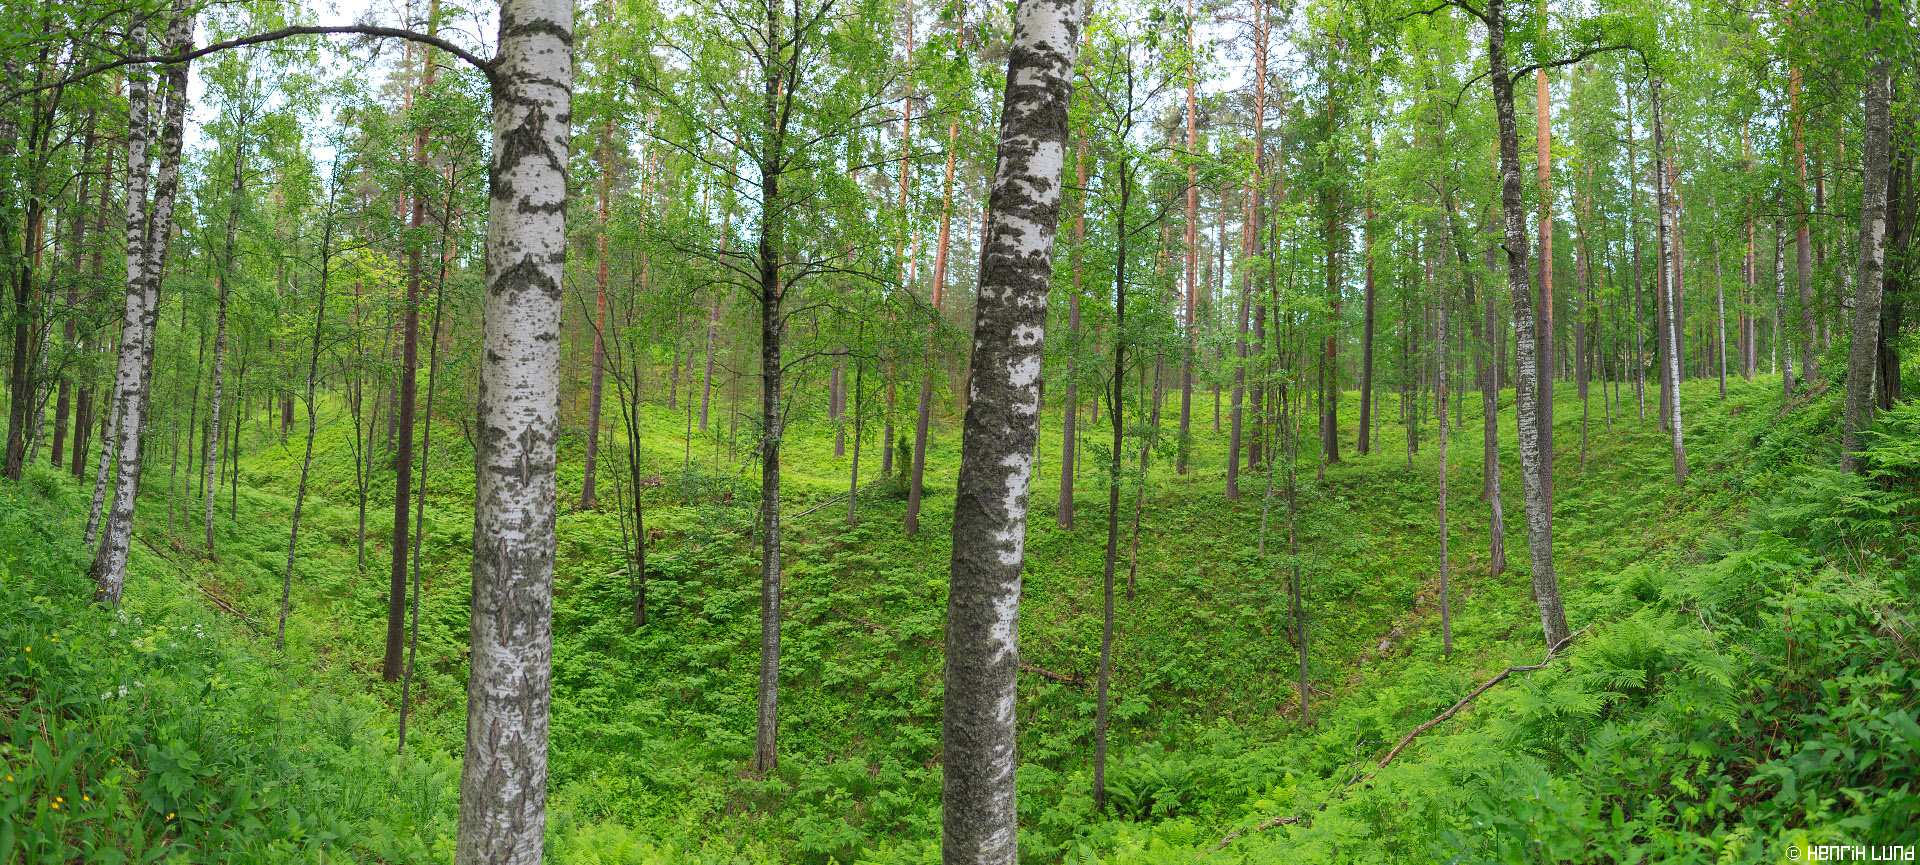 Panorama landscape from Punkaharju, Finland. June 2015.